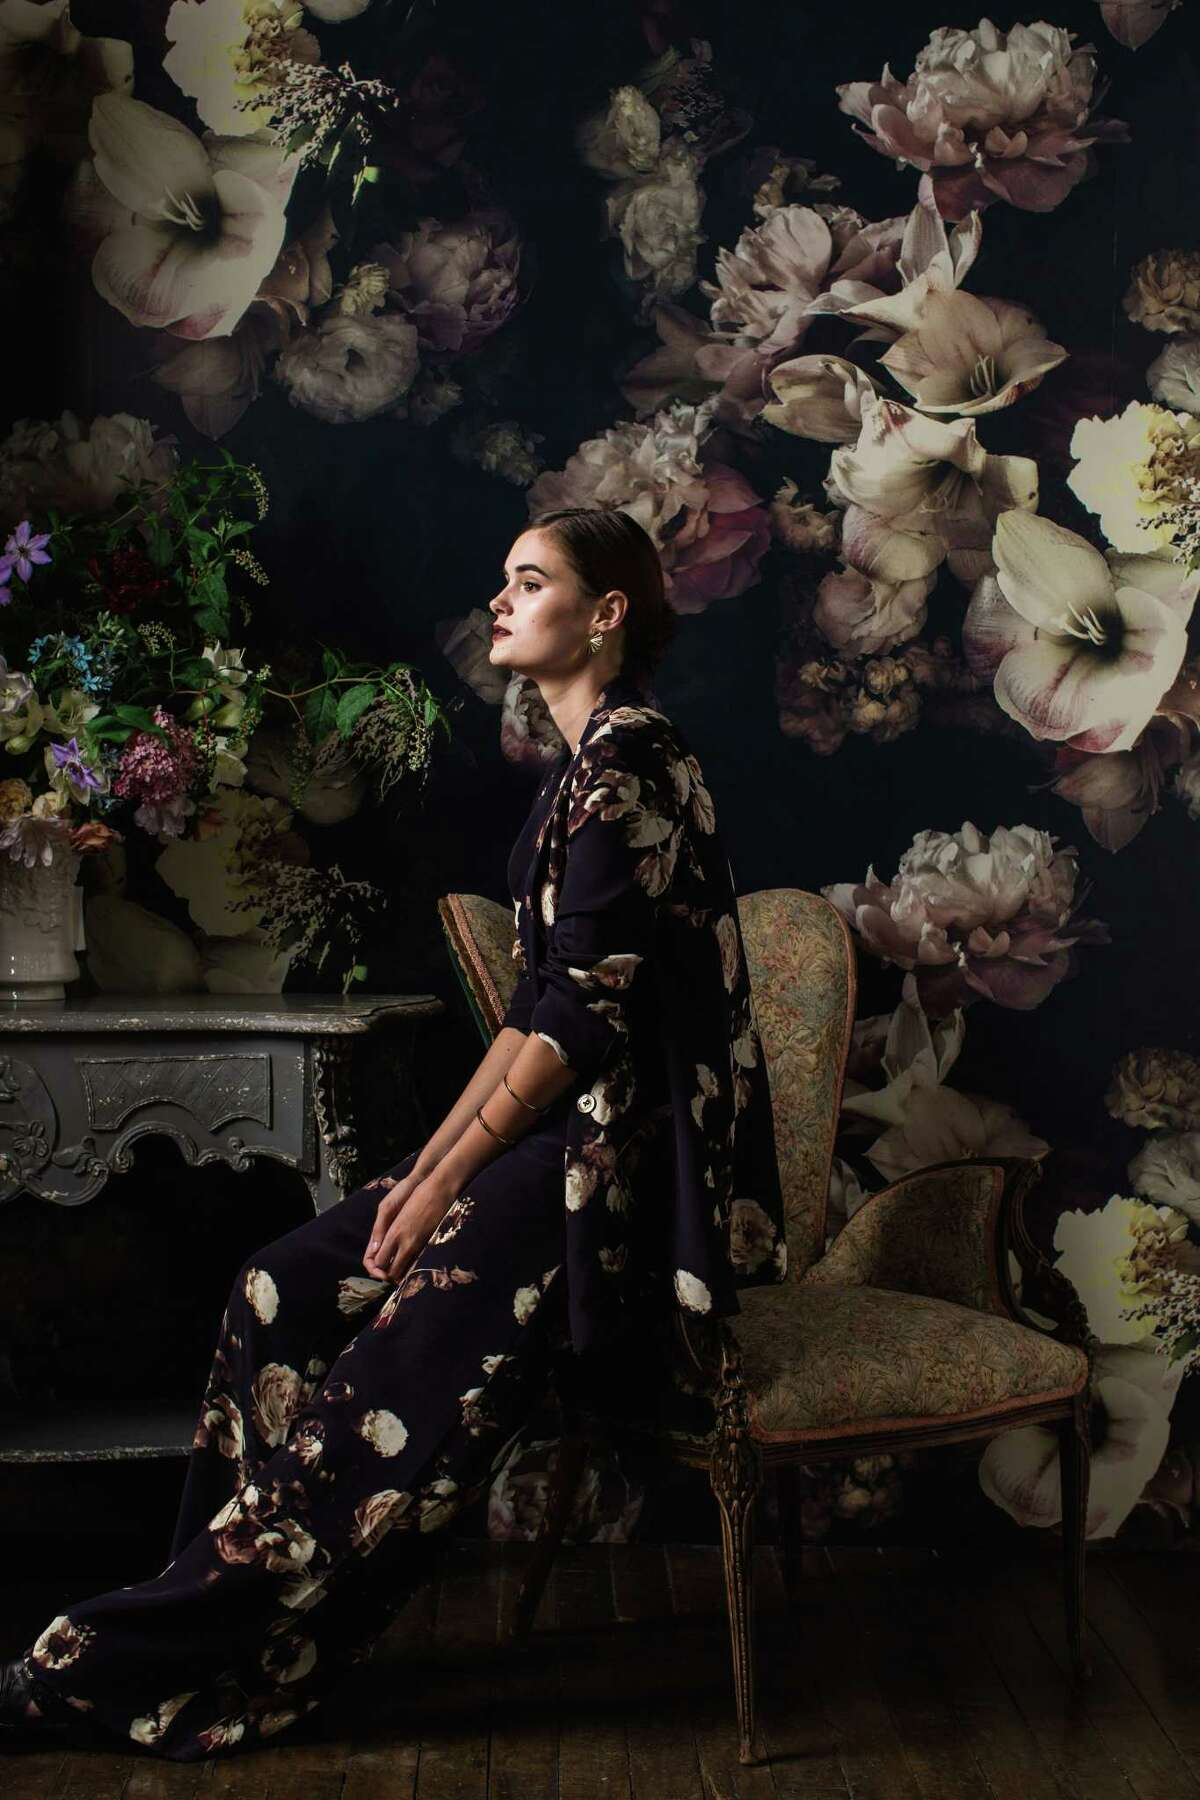 A model wears clothing from Ashley Woodson Bailey's Dutch Love collection with wallpaper by Bailey as a backdrop.